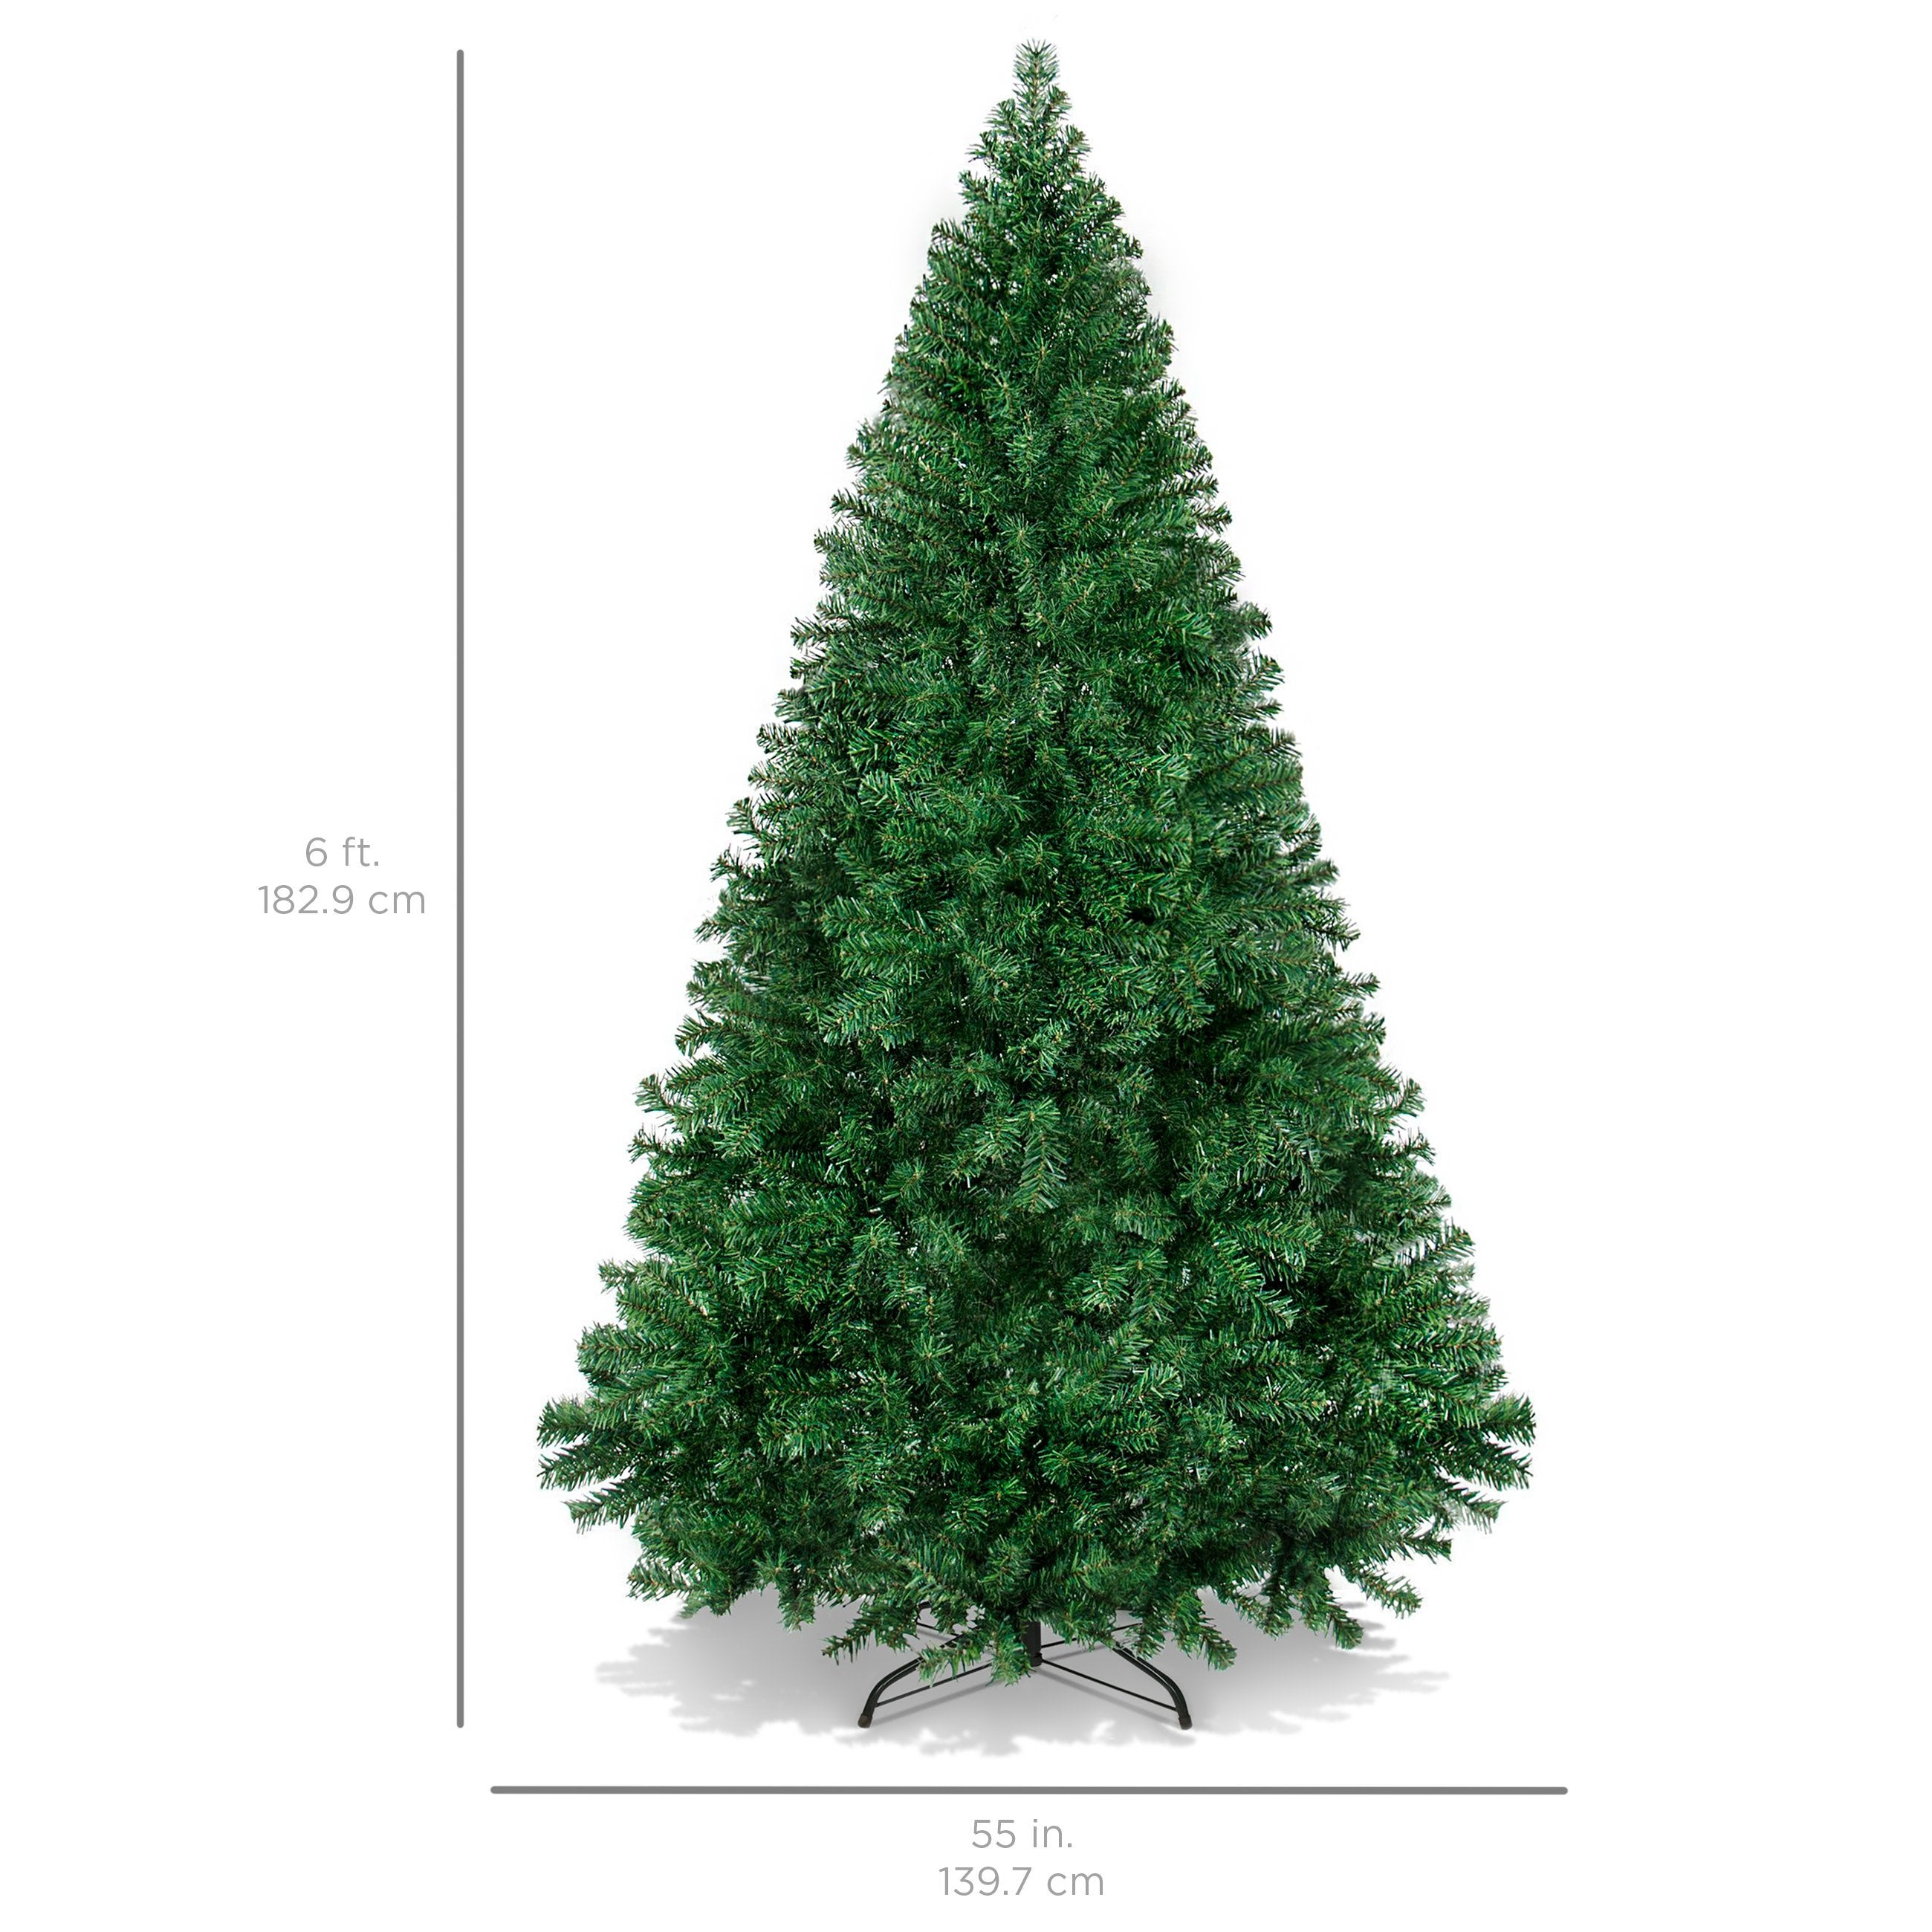 6ft Hinged Artificial Christmas Pine Tree w/ Metal Stand